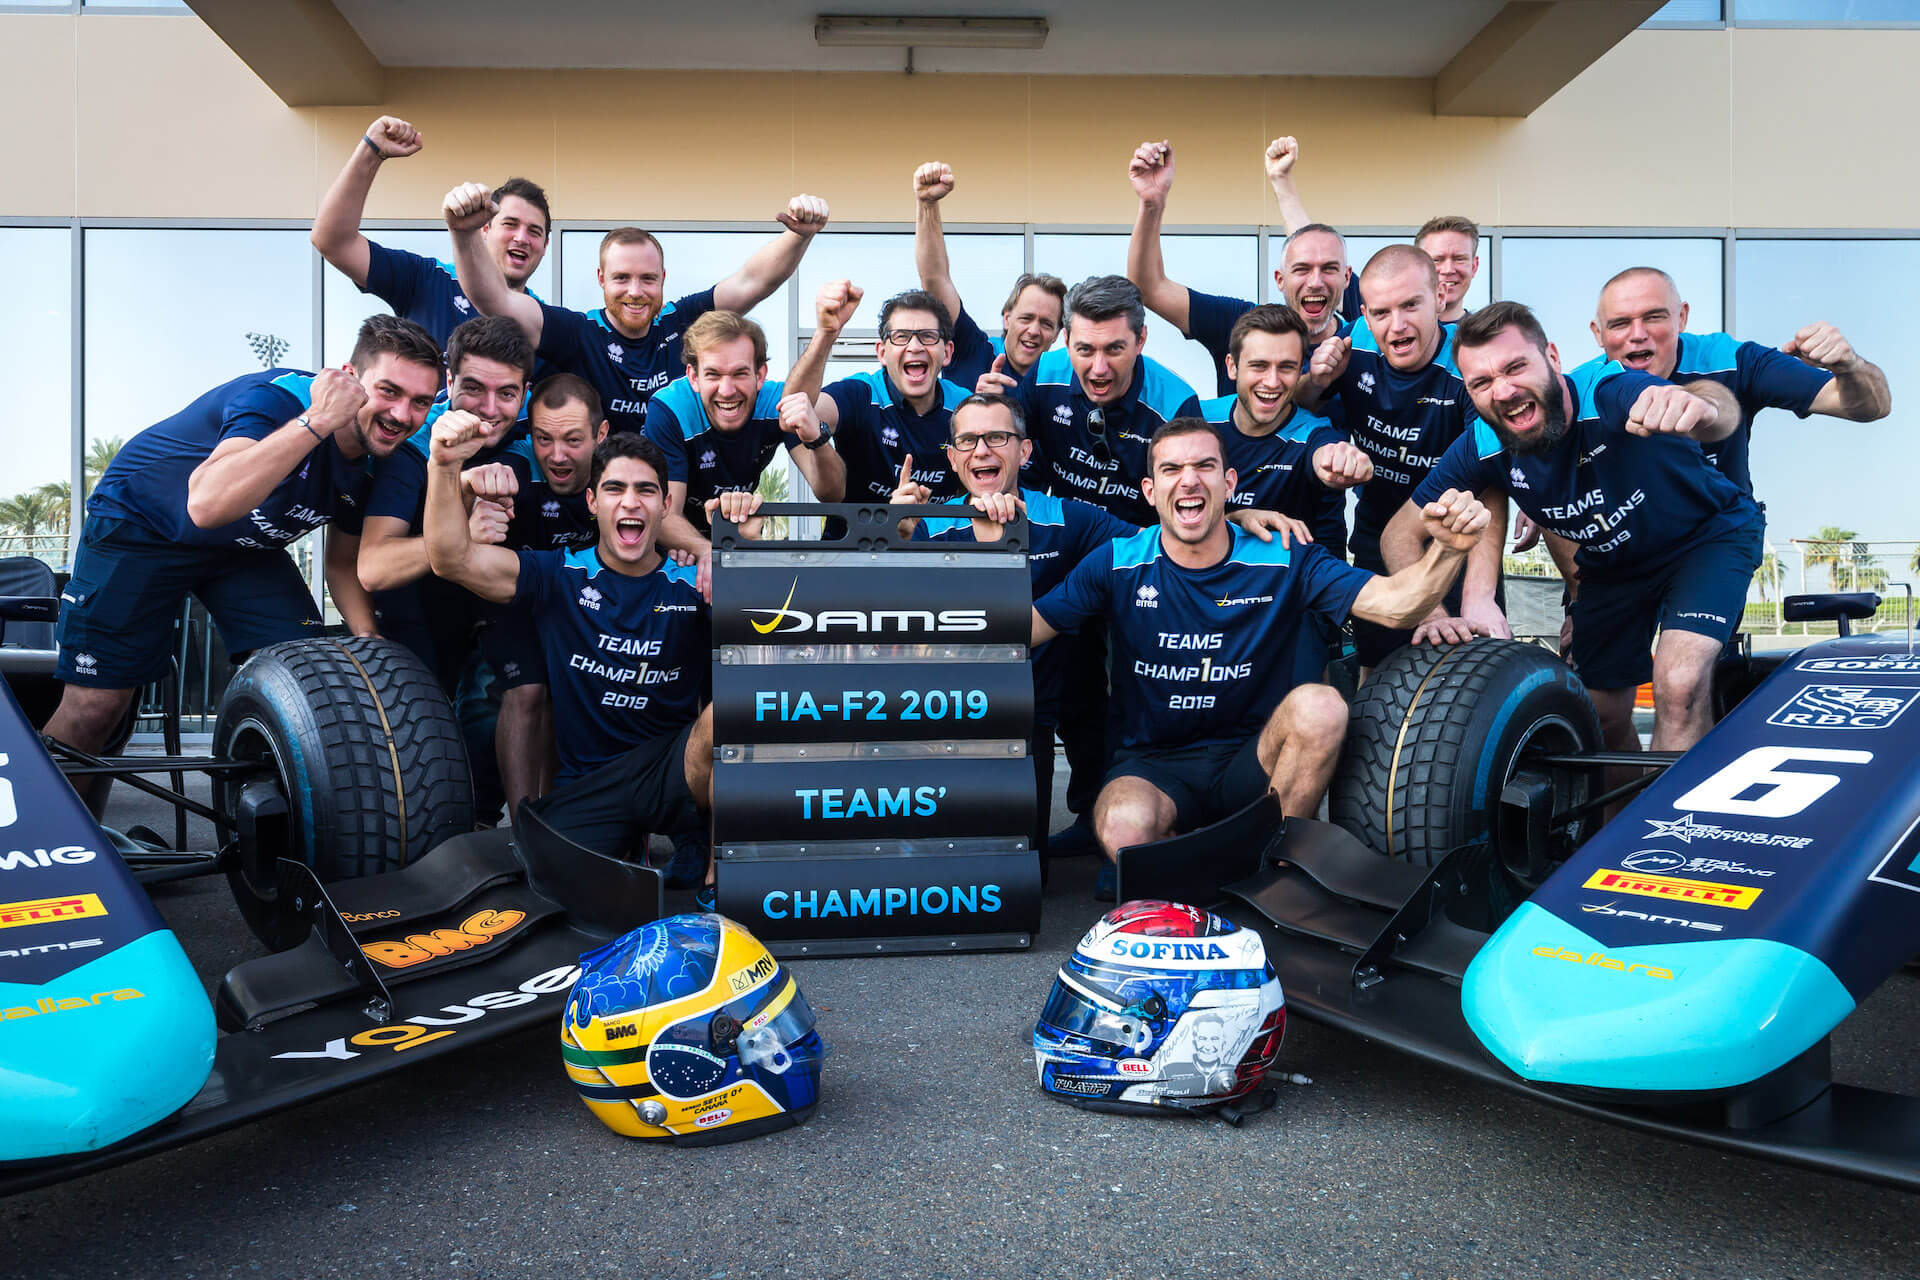 DAMS celebrates winning the 2019 F2 teams' title